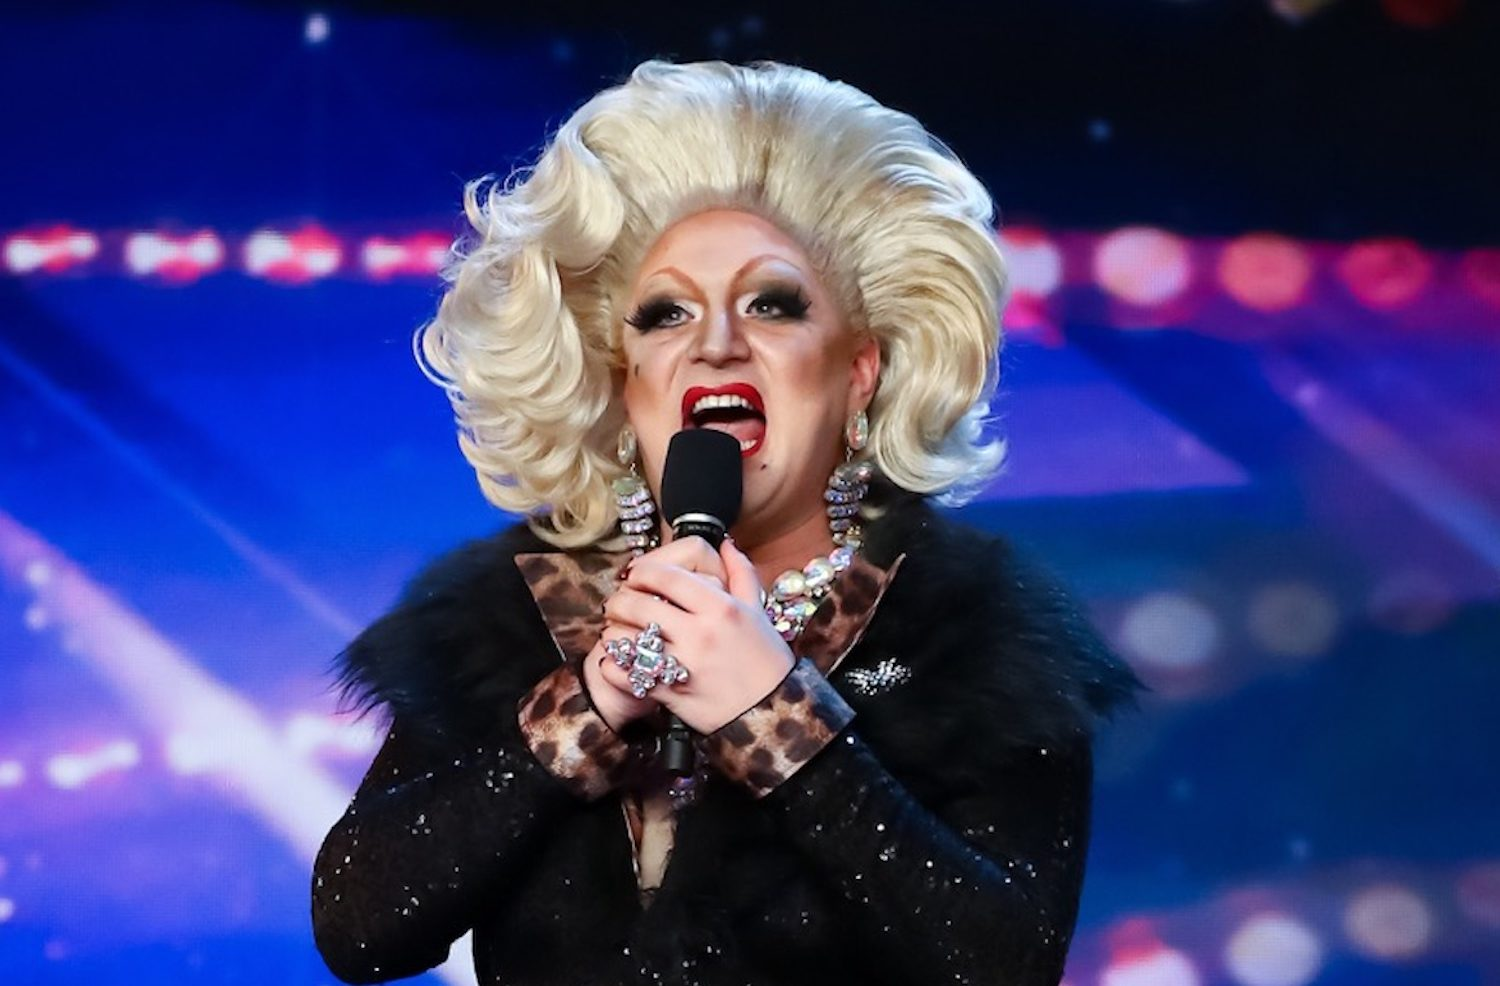 BGT star Myra DuBois is hosting FREE comedy shows online during lockdown – here's how you can watch